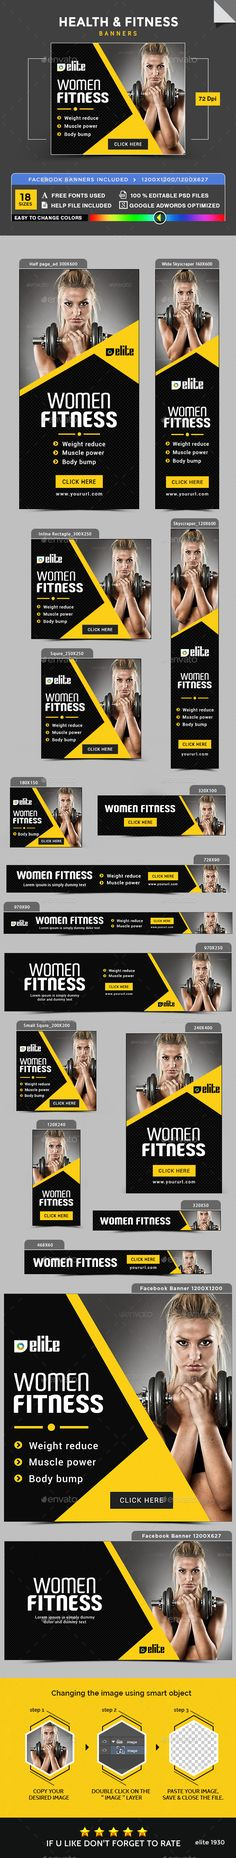 Health & Fitness Banners — Photoshop PSD #studio #flat design • Available here → https://graphicriver.net/item/health-fitness-banners/18519760?ref=pxcr